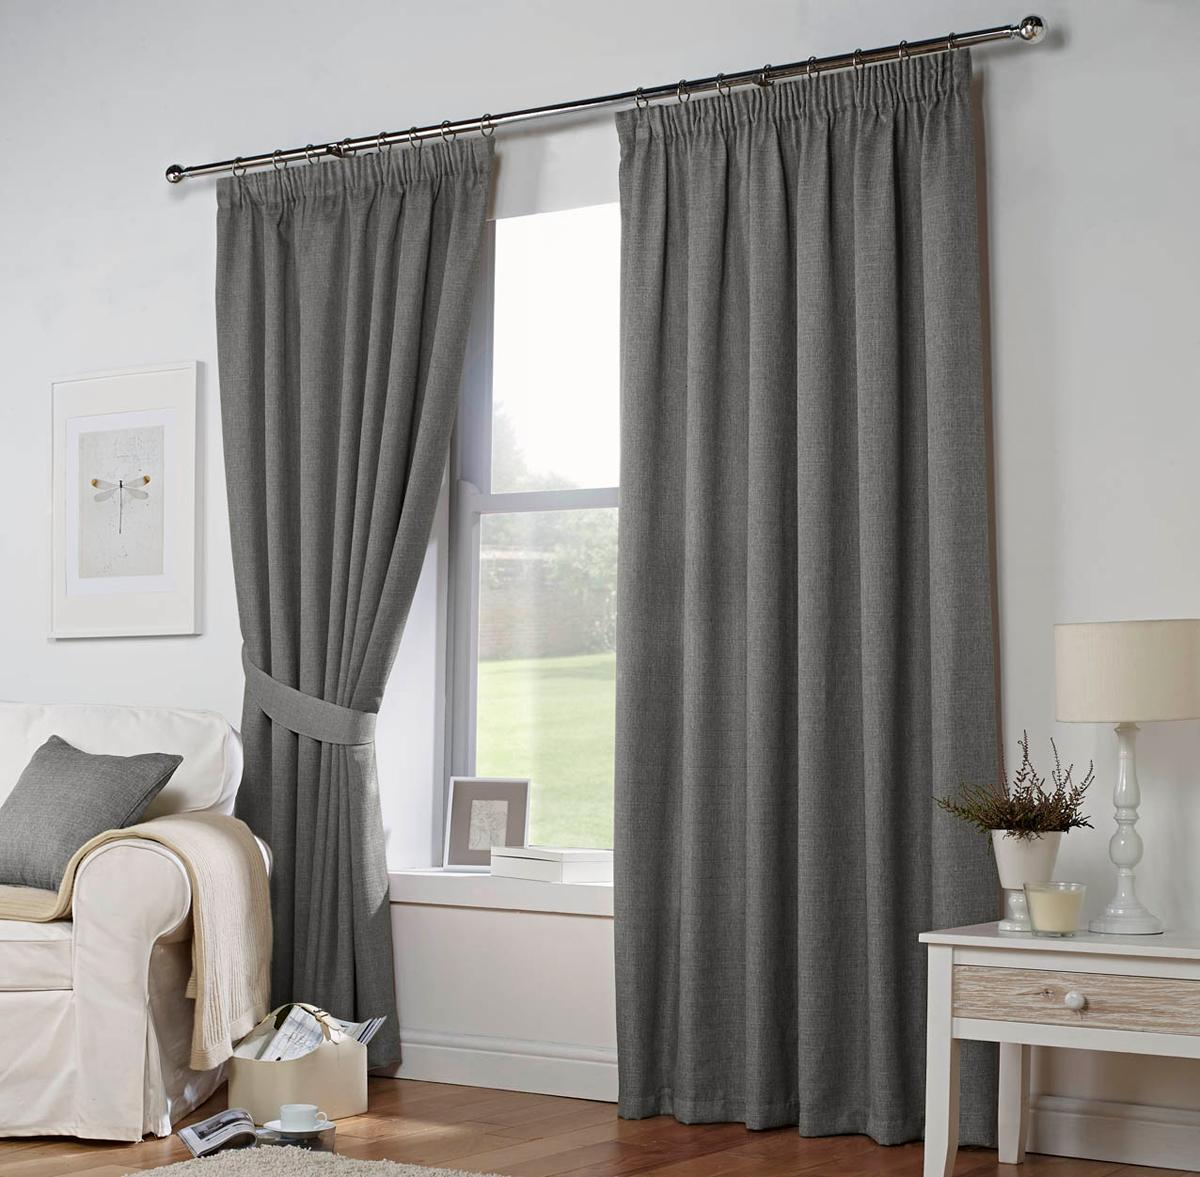 Leighton Ready Made Curtains In Grey